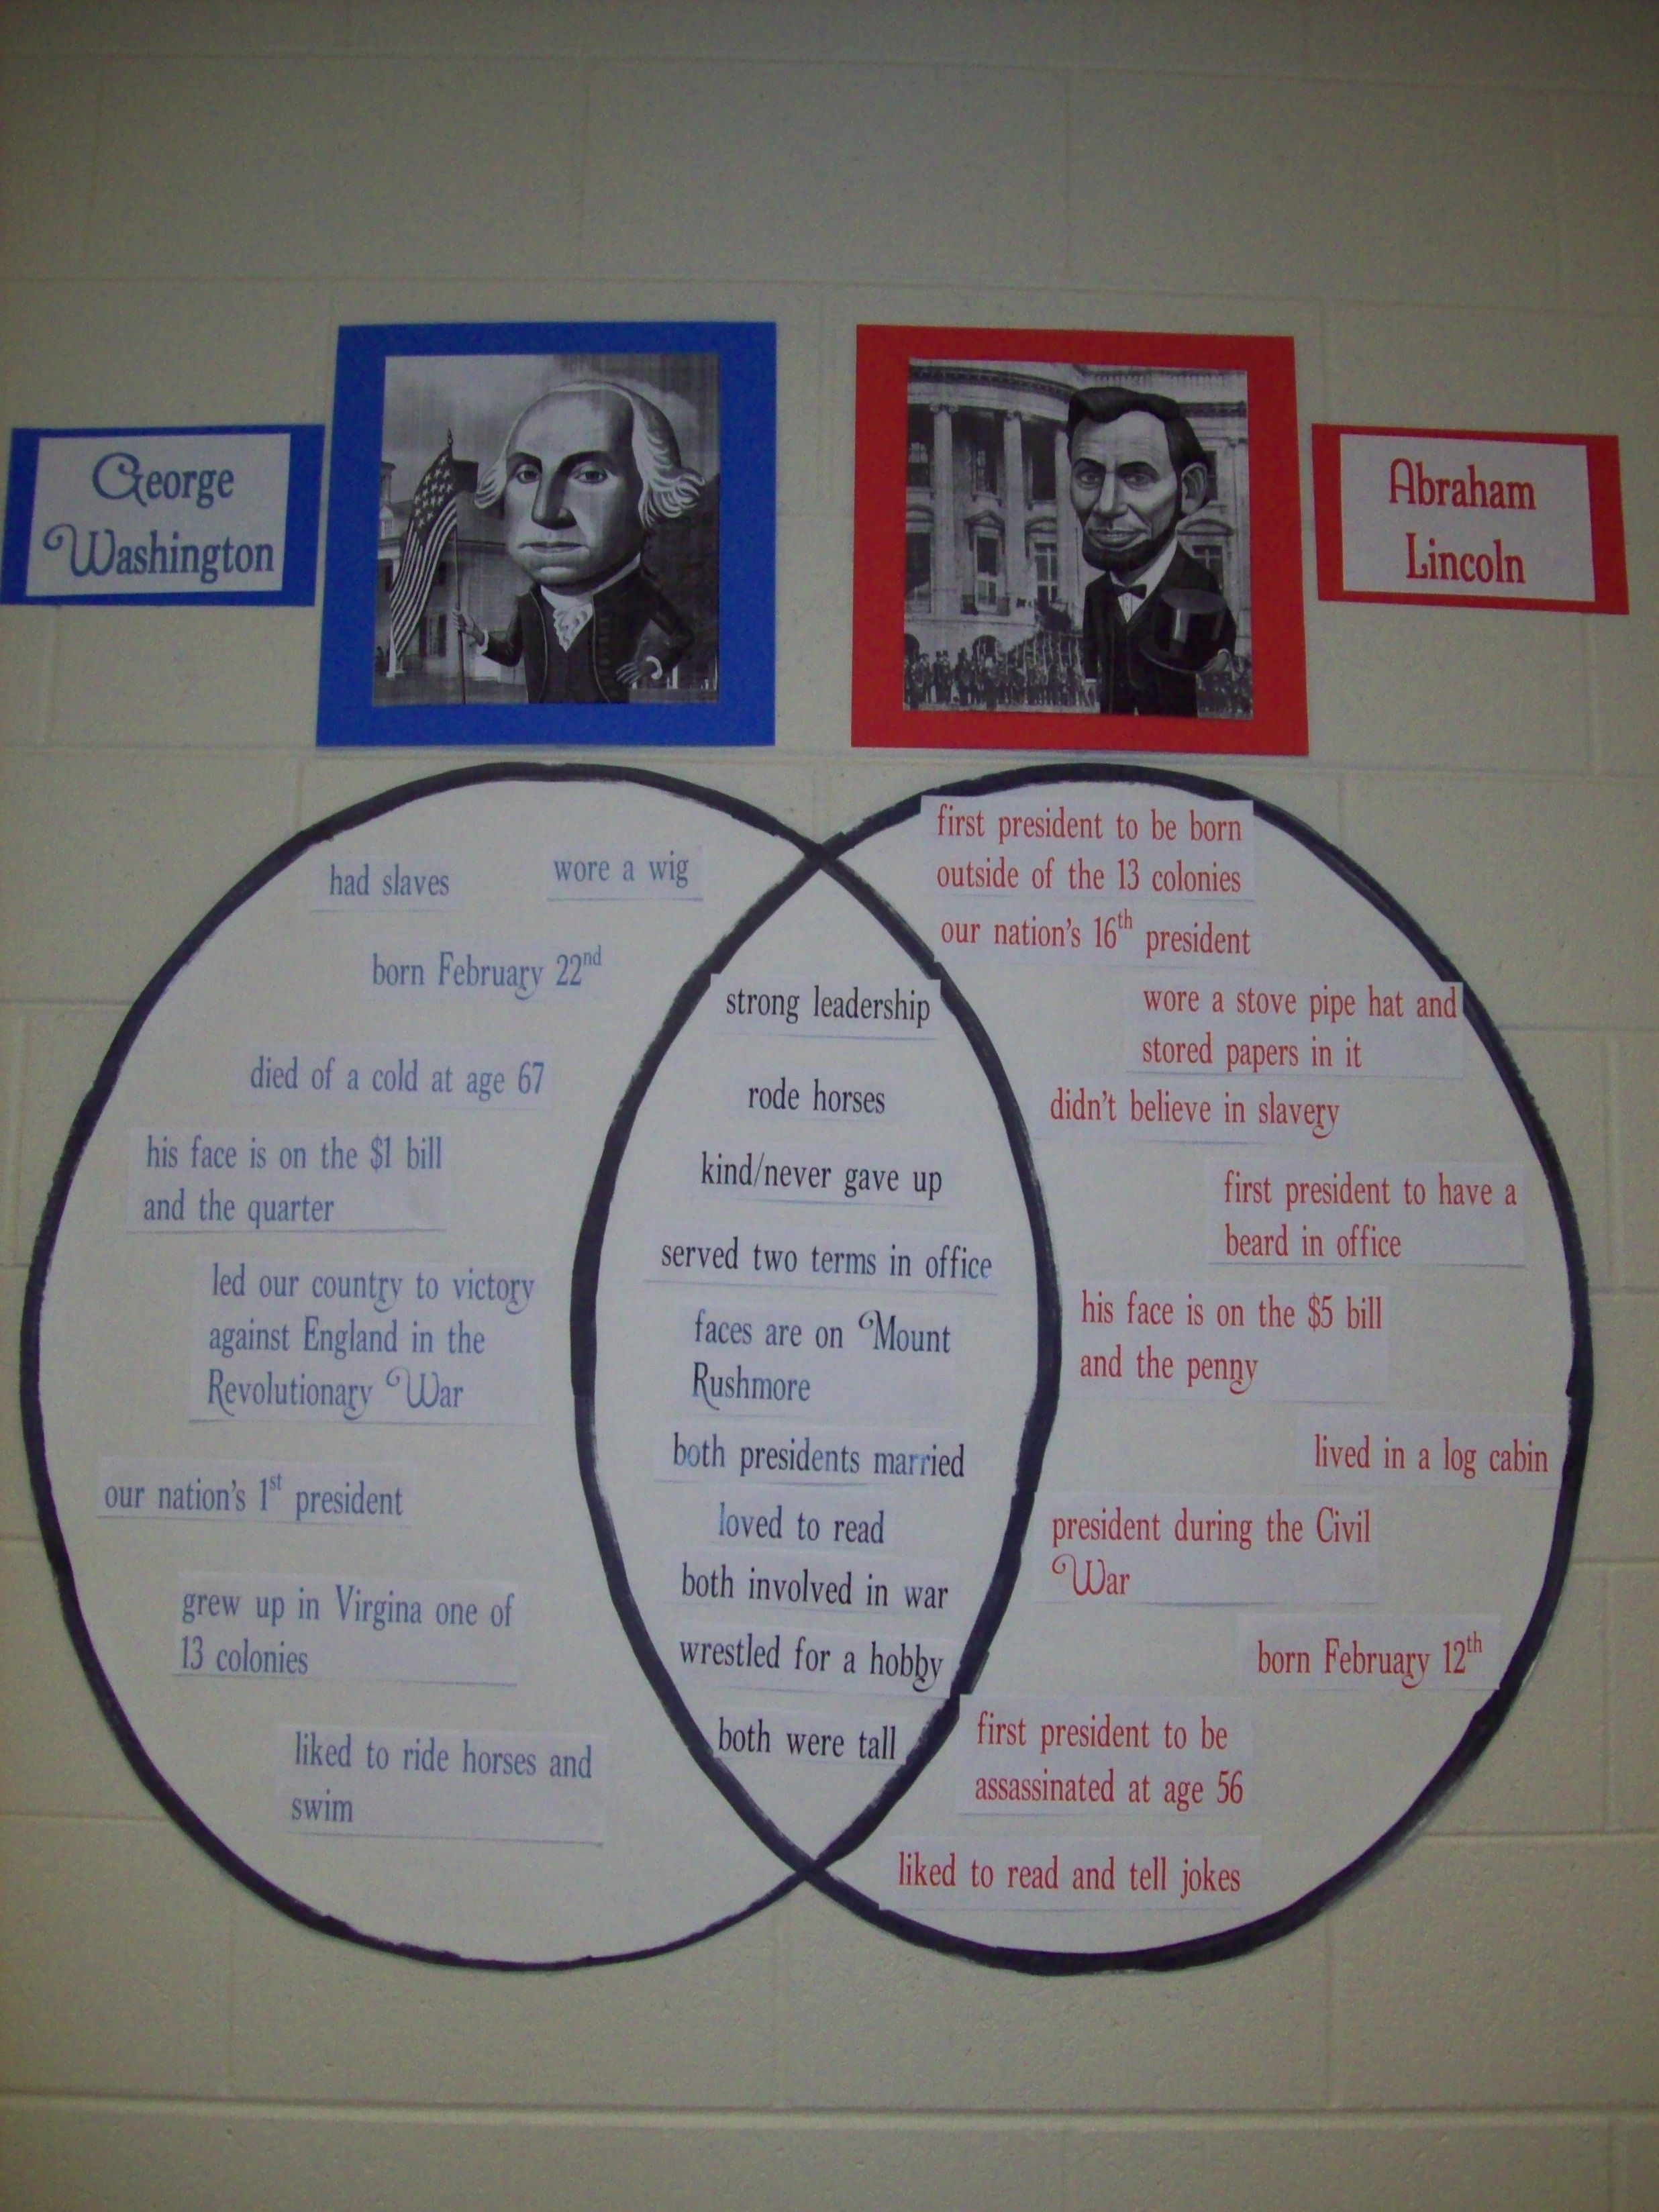 Comparing And Contrasting With George And Abraham